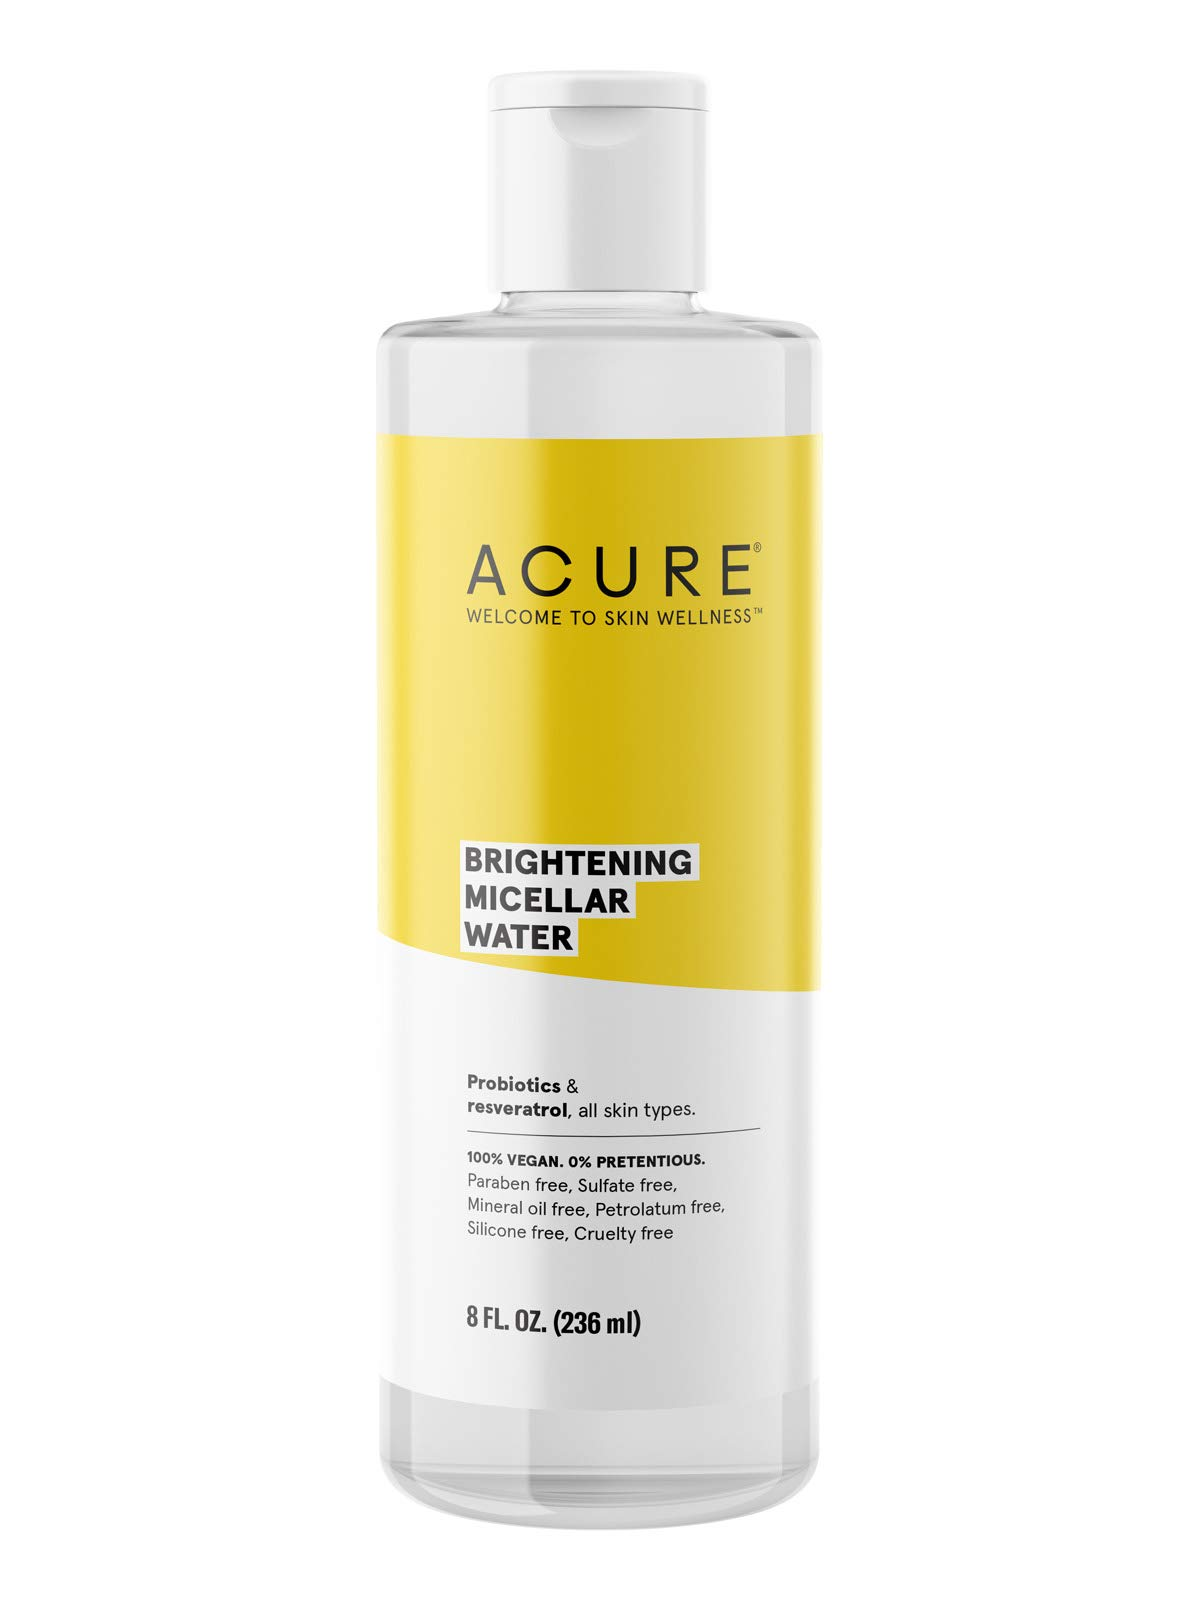 Acure Brightening Micellar Water | 100% Vegan | For A Brighter Appearance | Probiotics & Resveratrol - Draws Out Impurities, Moisturizes & Tones | All Skin Types | 8 Fl Oz, Multi Color